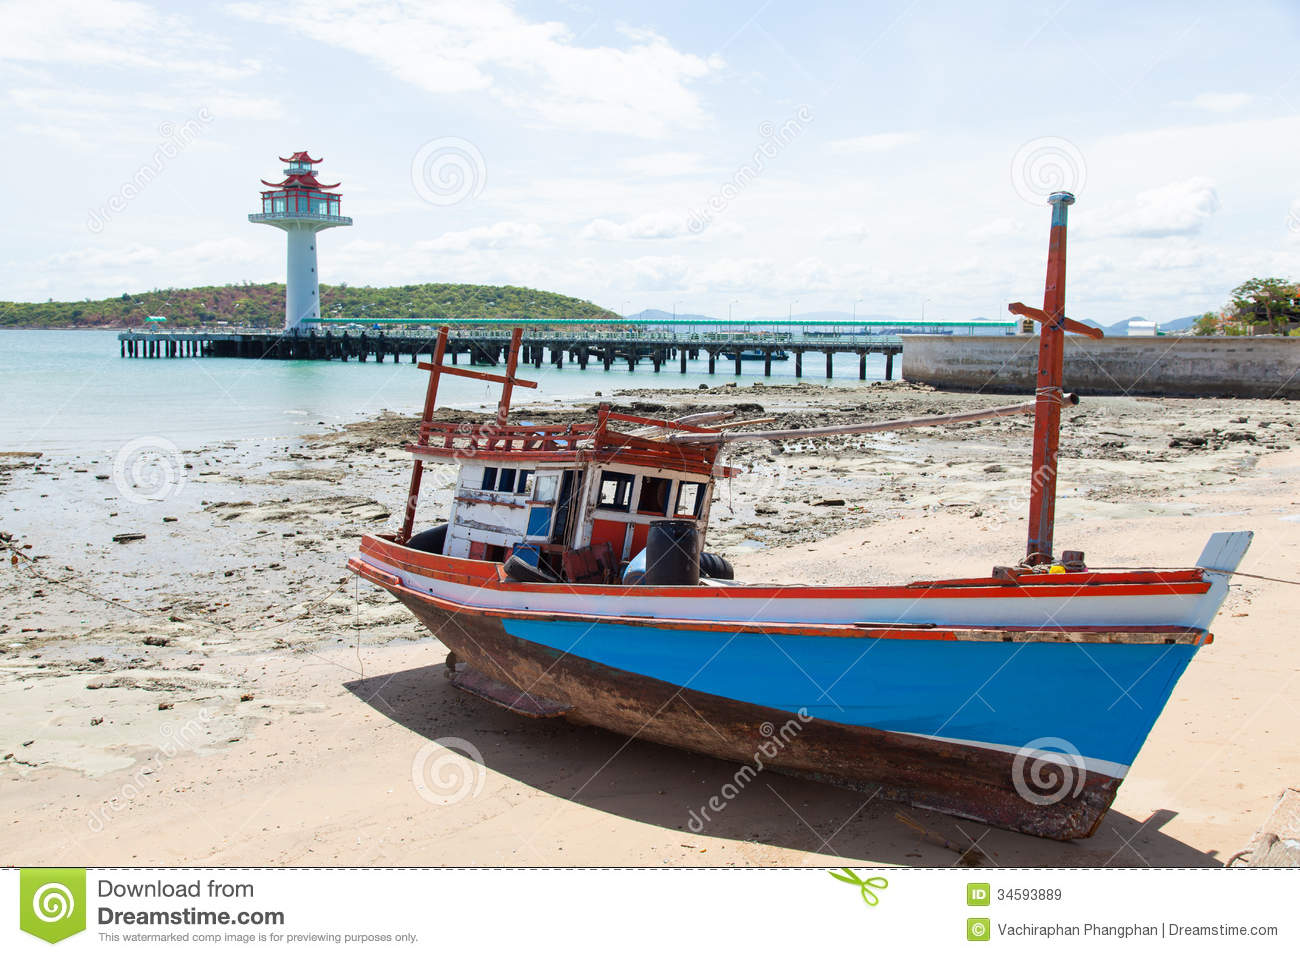 Wooden Fishing Boat Moored On The Beach. Royalty Free Stock Images - Image: 34593889